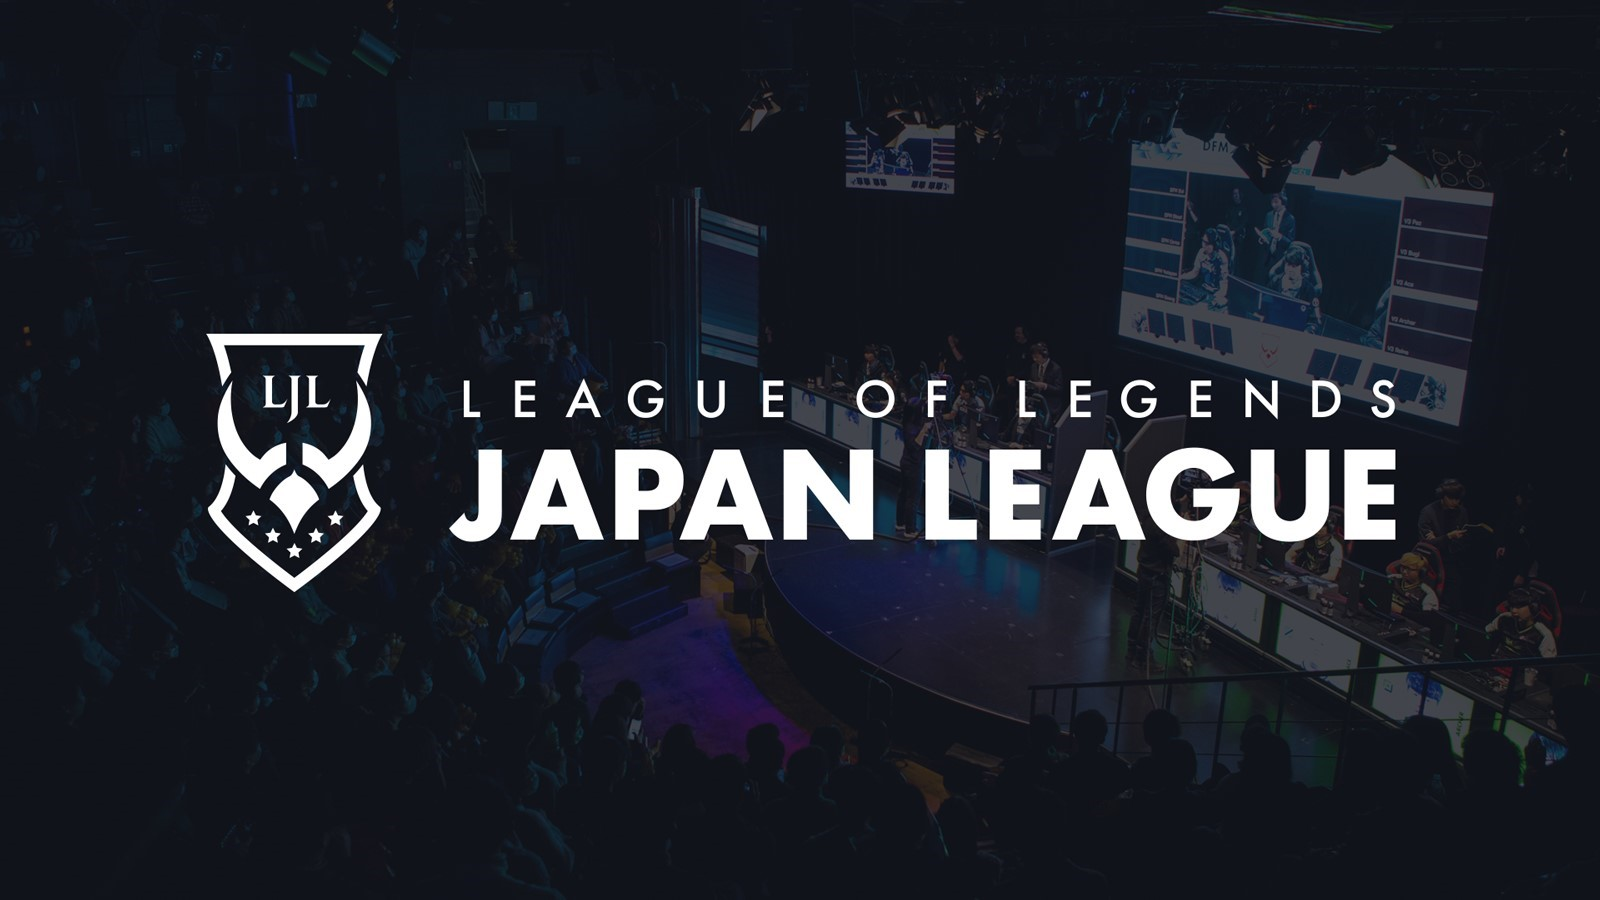 League of Legends(LoL)とは